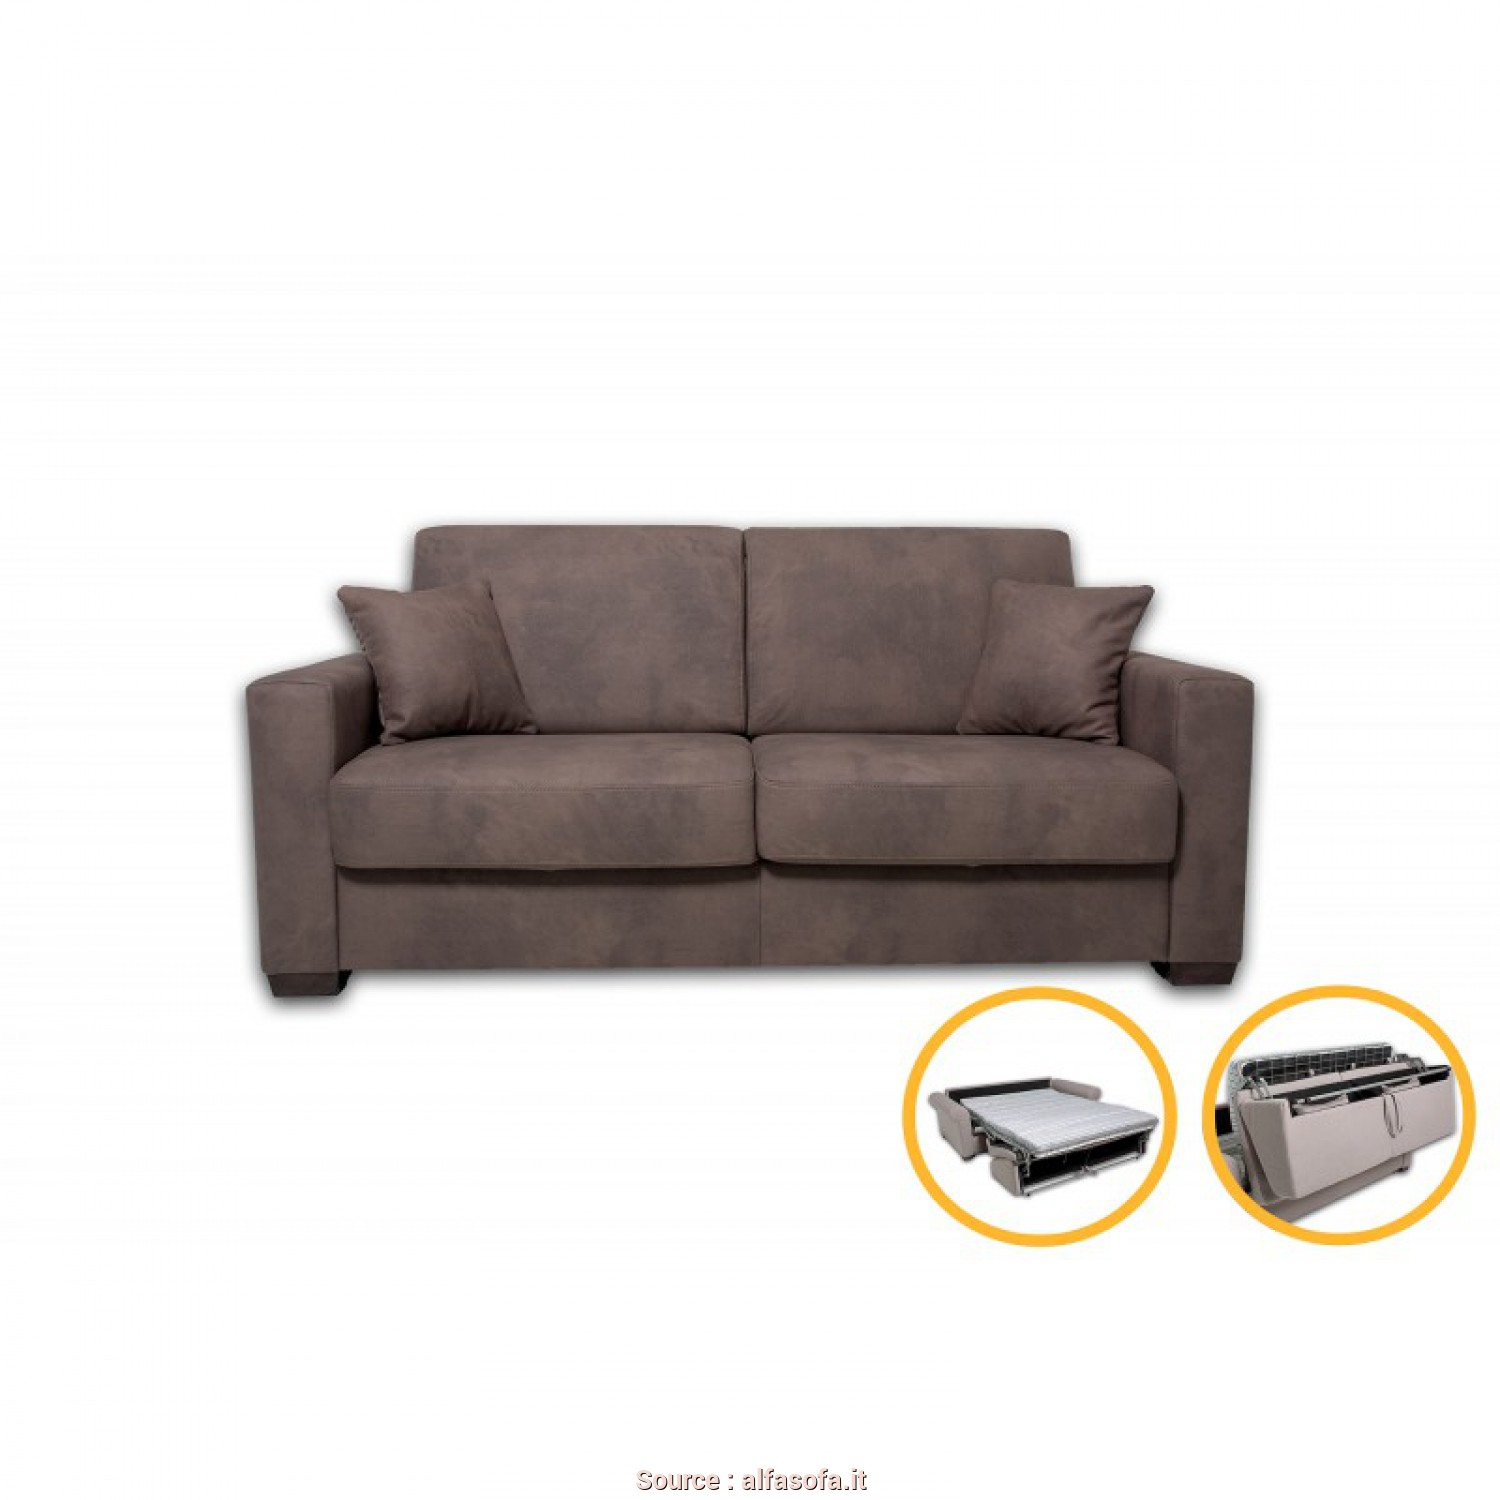 Www.Subito.It Divani, Superiore Mombasa Folding Sofa Bed